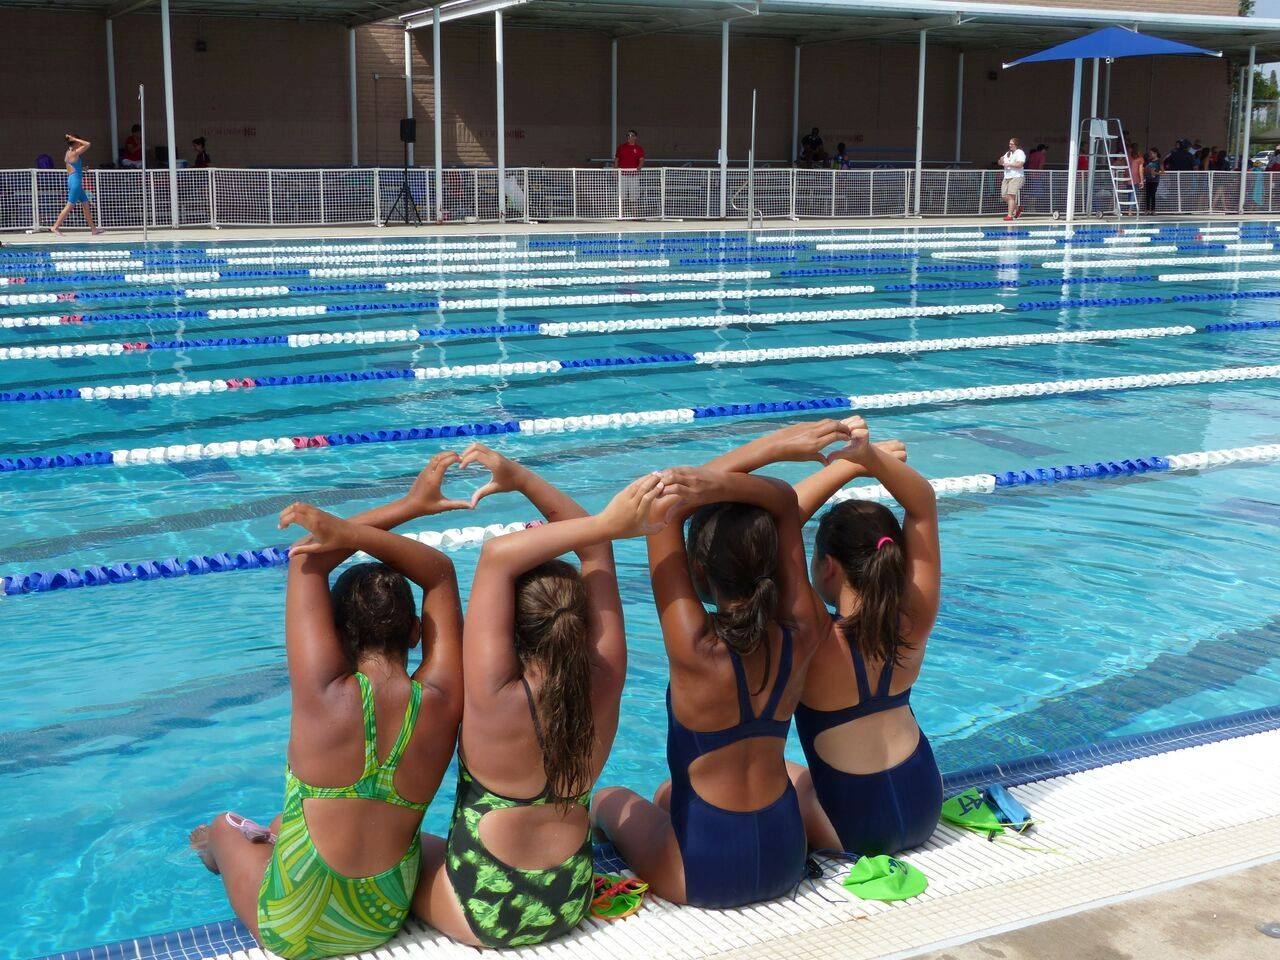 7b0b1313537 So you want to be on SWAT Swim Team  To schedule an evaluation for  placement on our competitive team